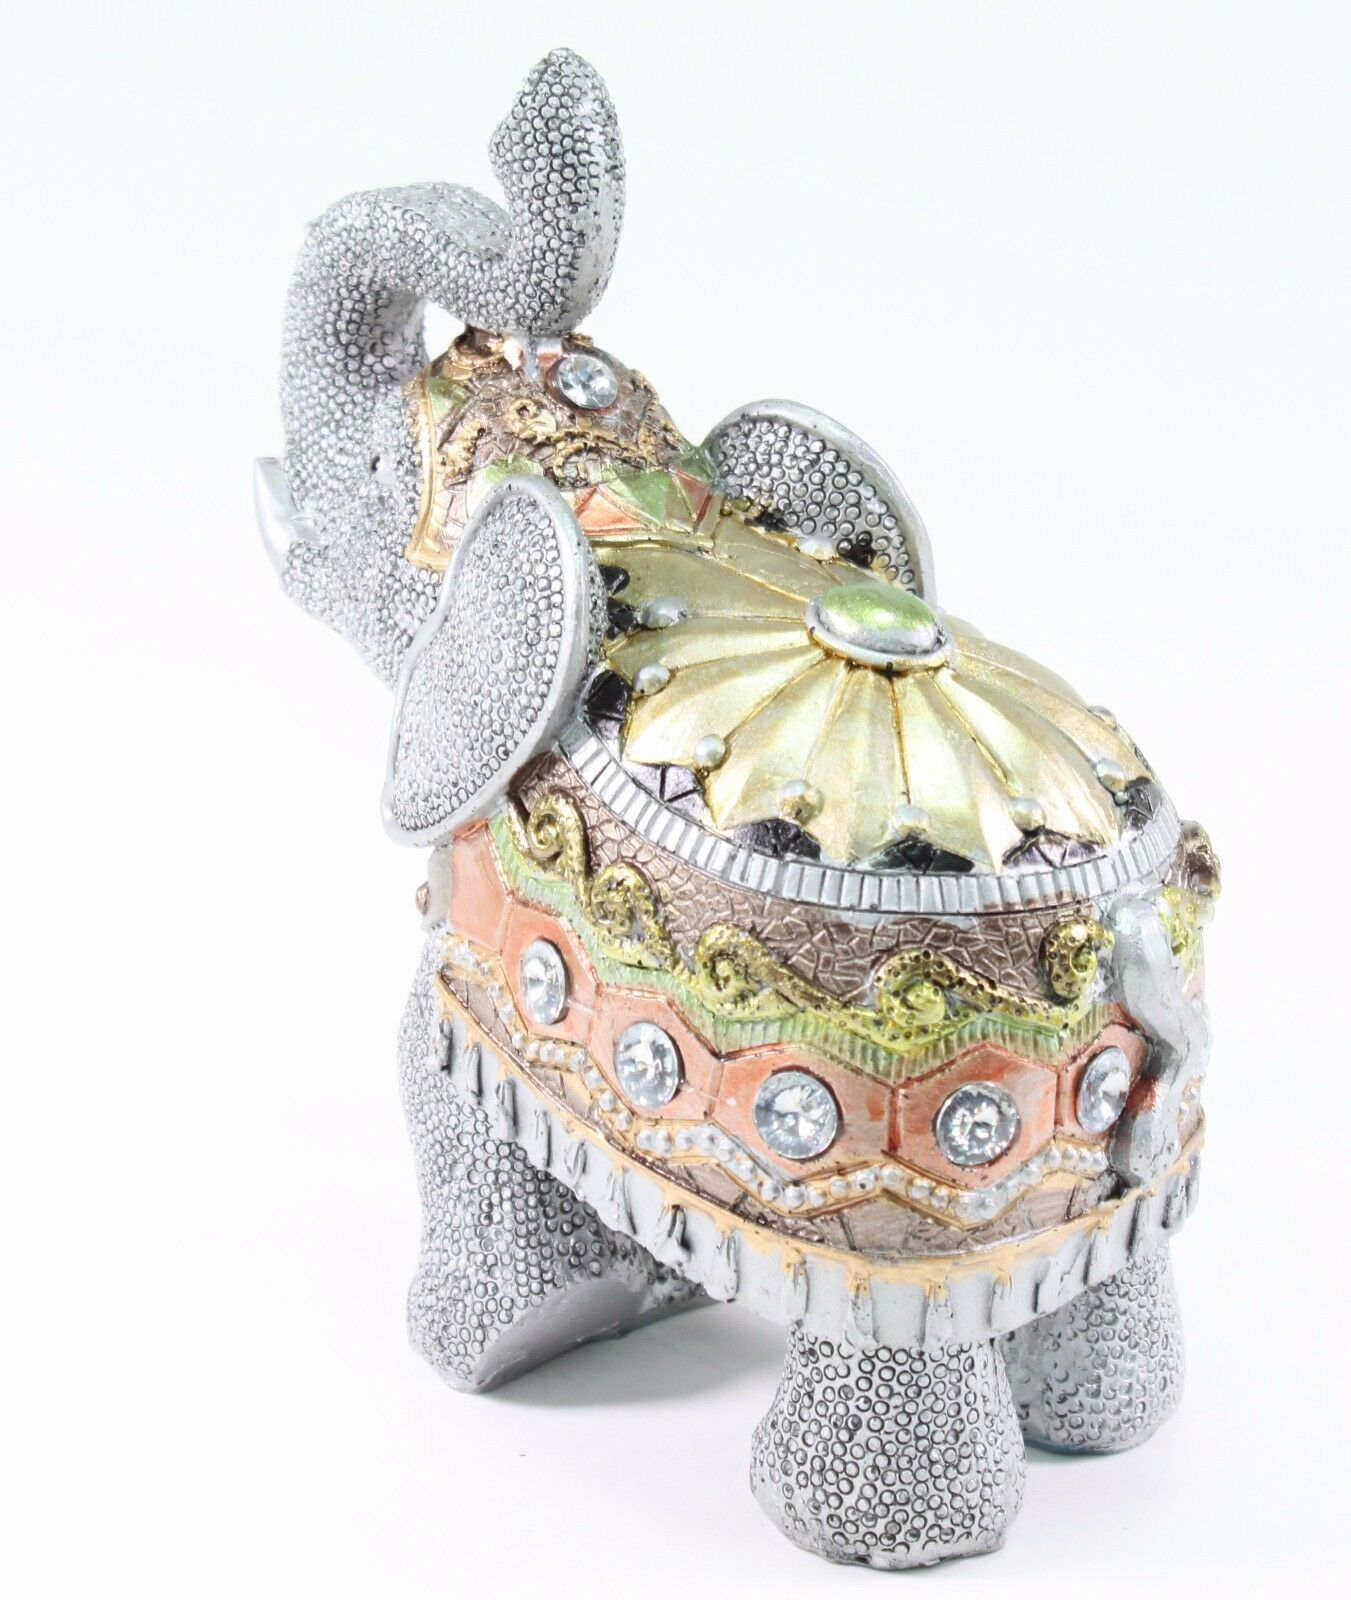 feng shui 6 5 gray elephant trunk statue lucky figurine gift home decor ebay. Black Bedroom Furniture Sets. Home Design Ideas